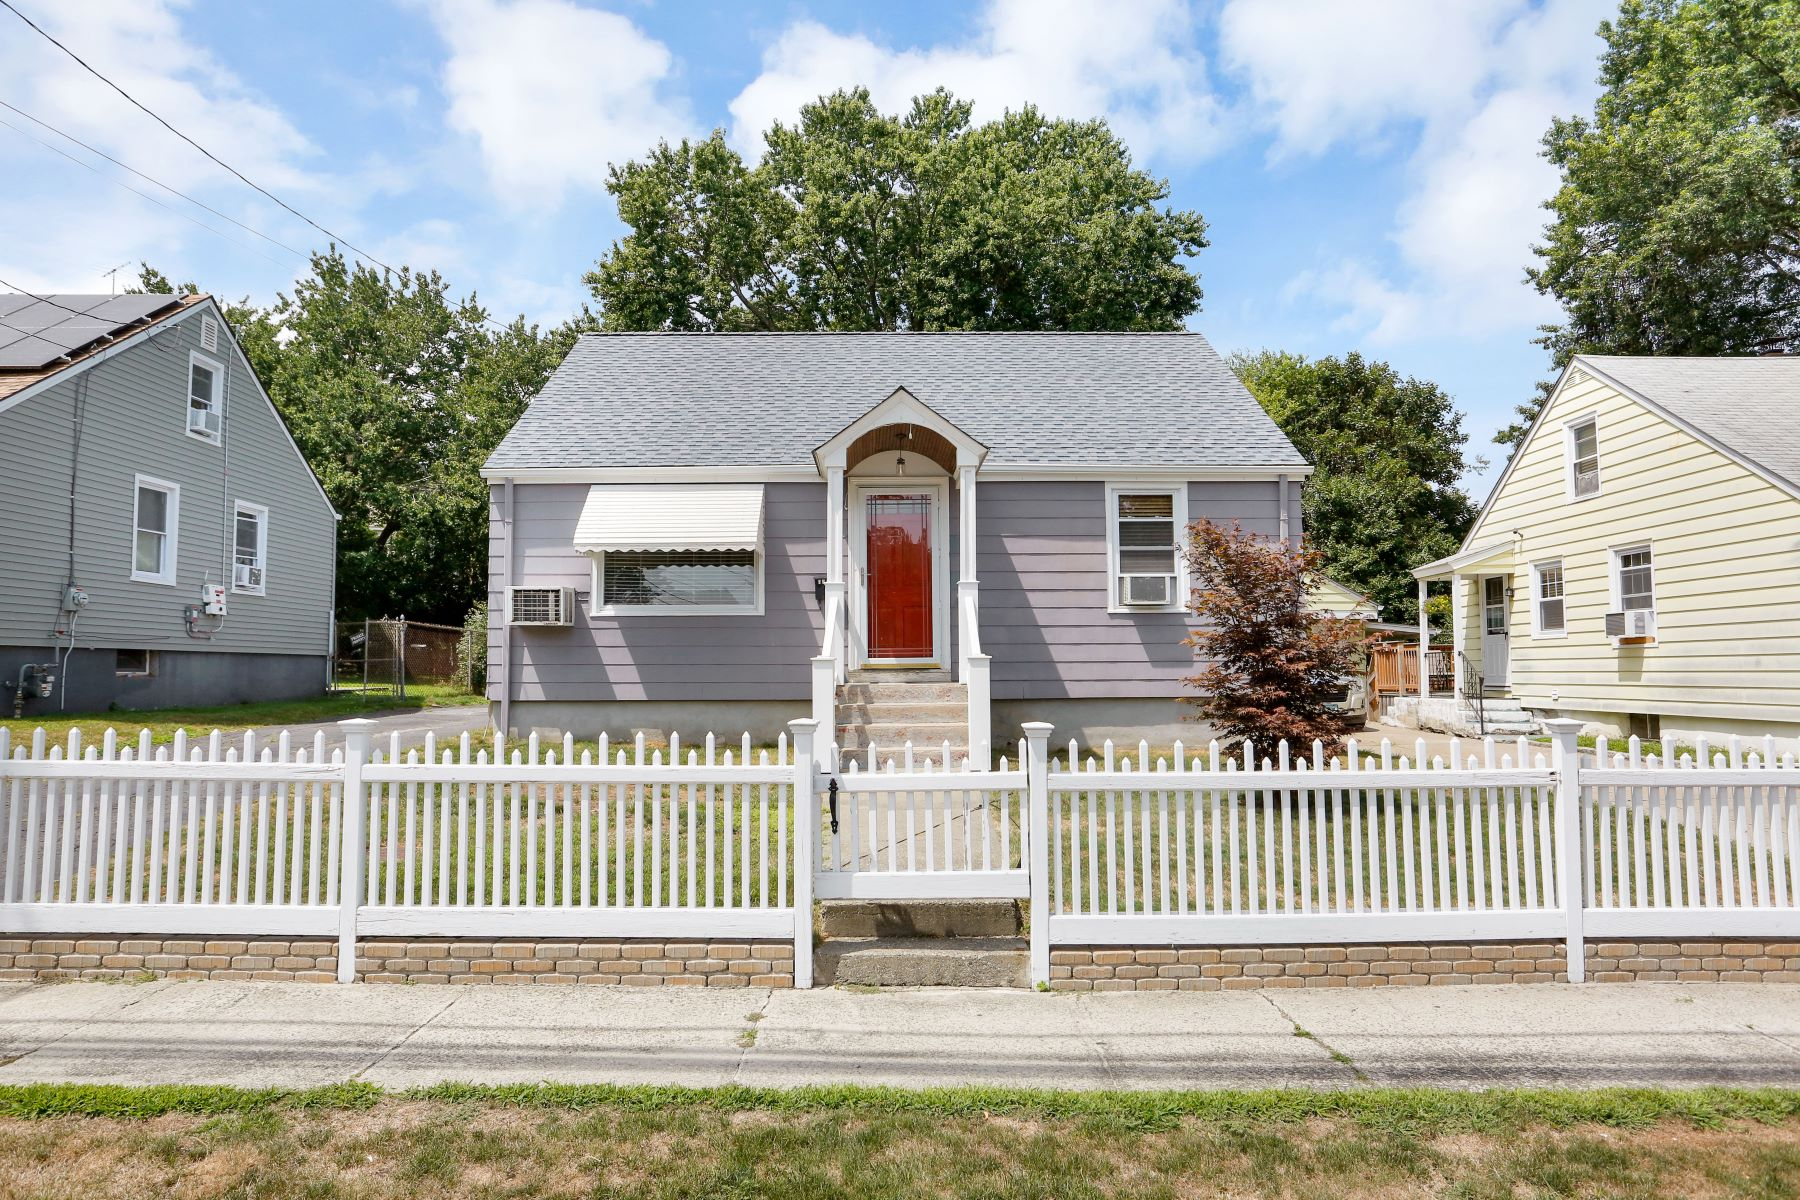 Single Family Homes for Sale at 157 Carnegie Avenue Bridgeport, Connecticut 06610 United States